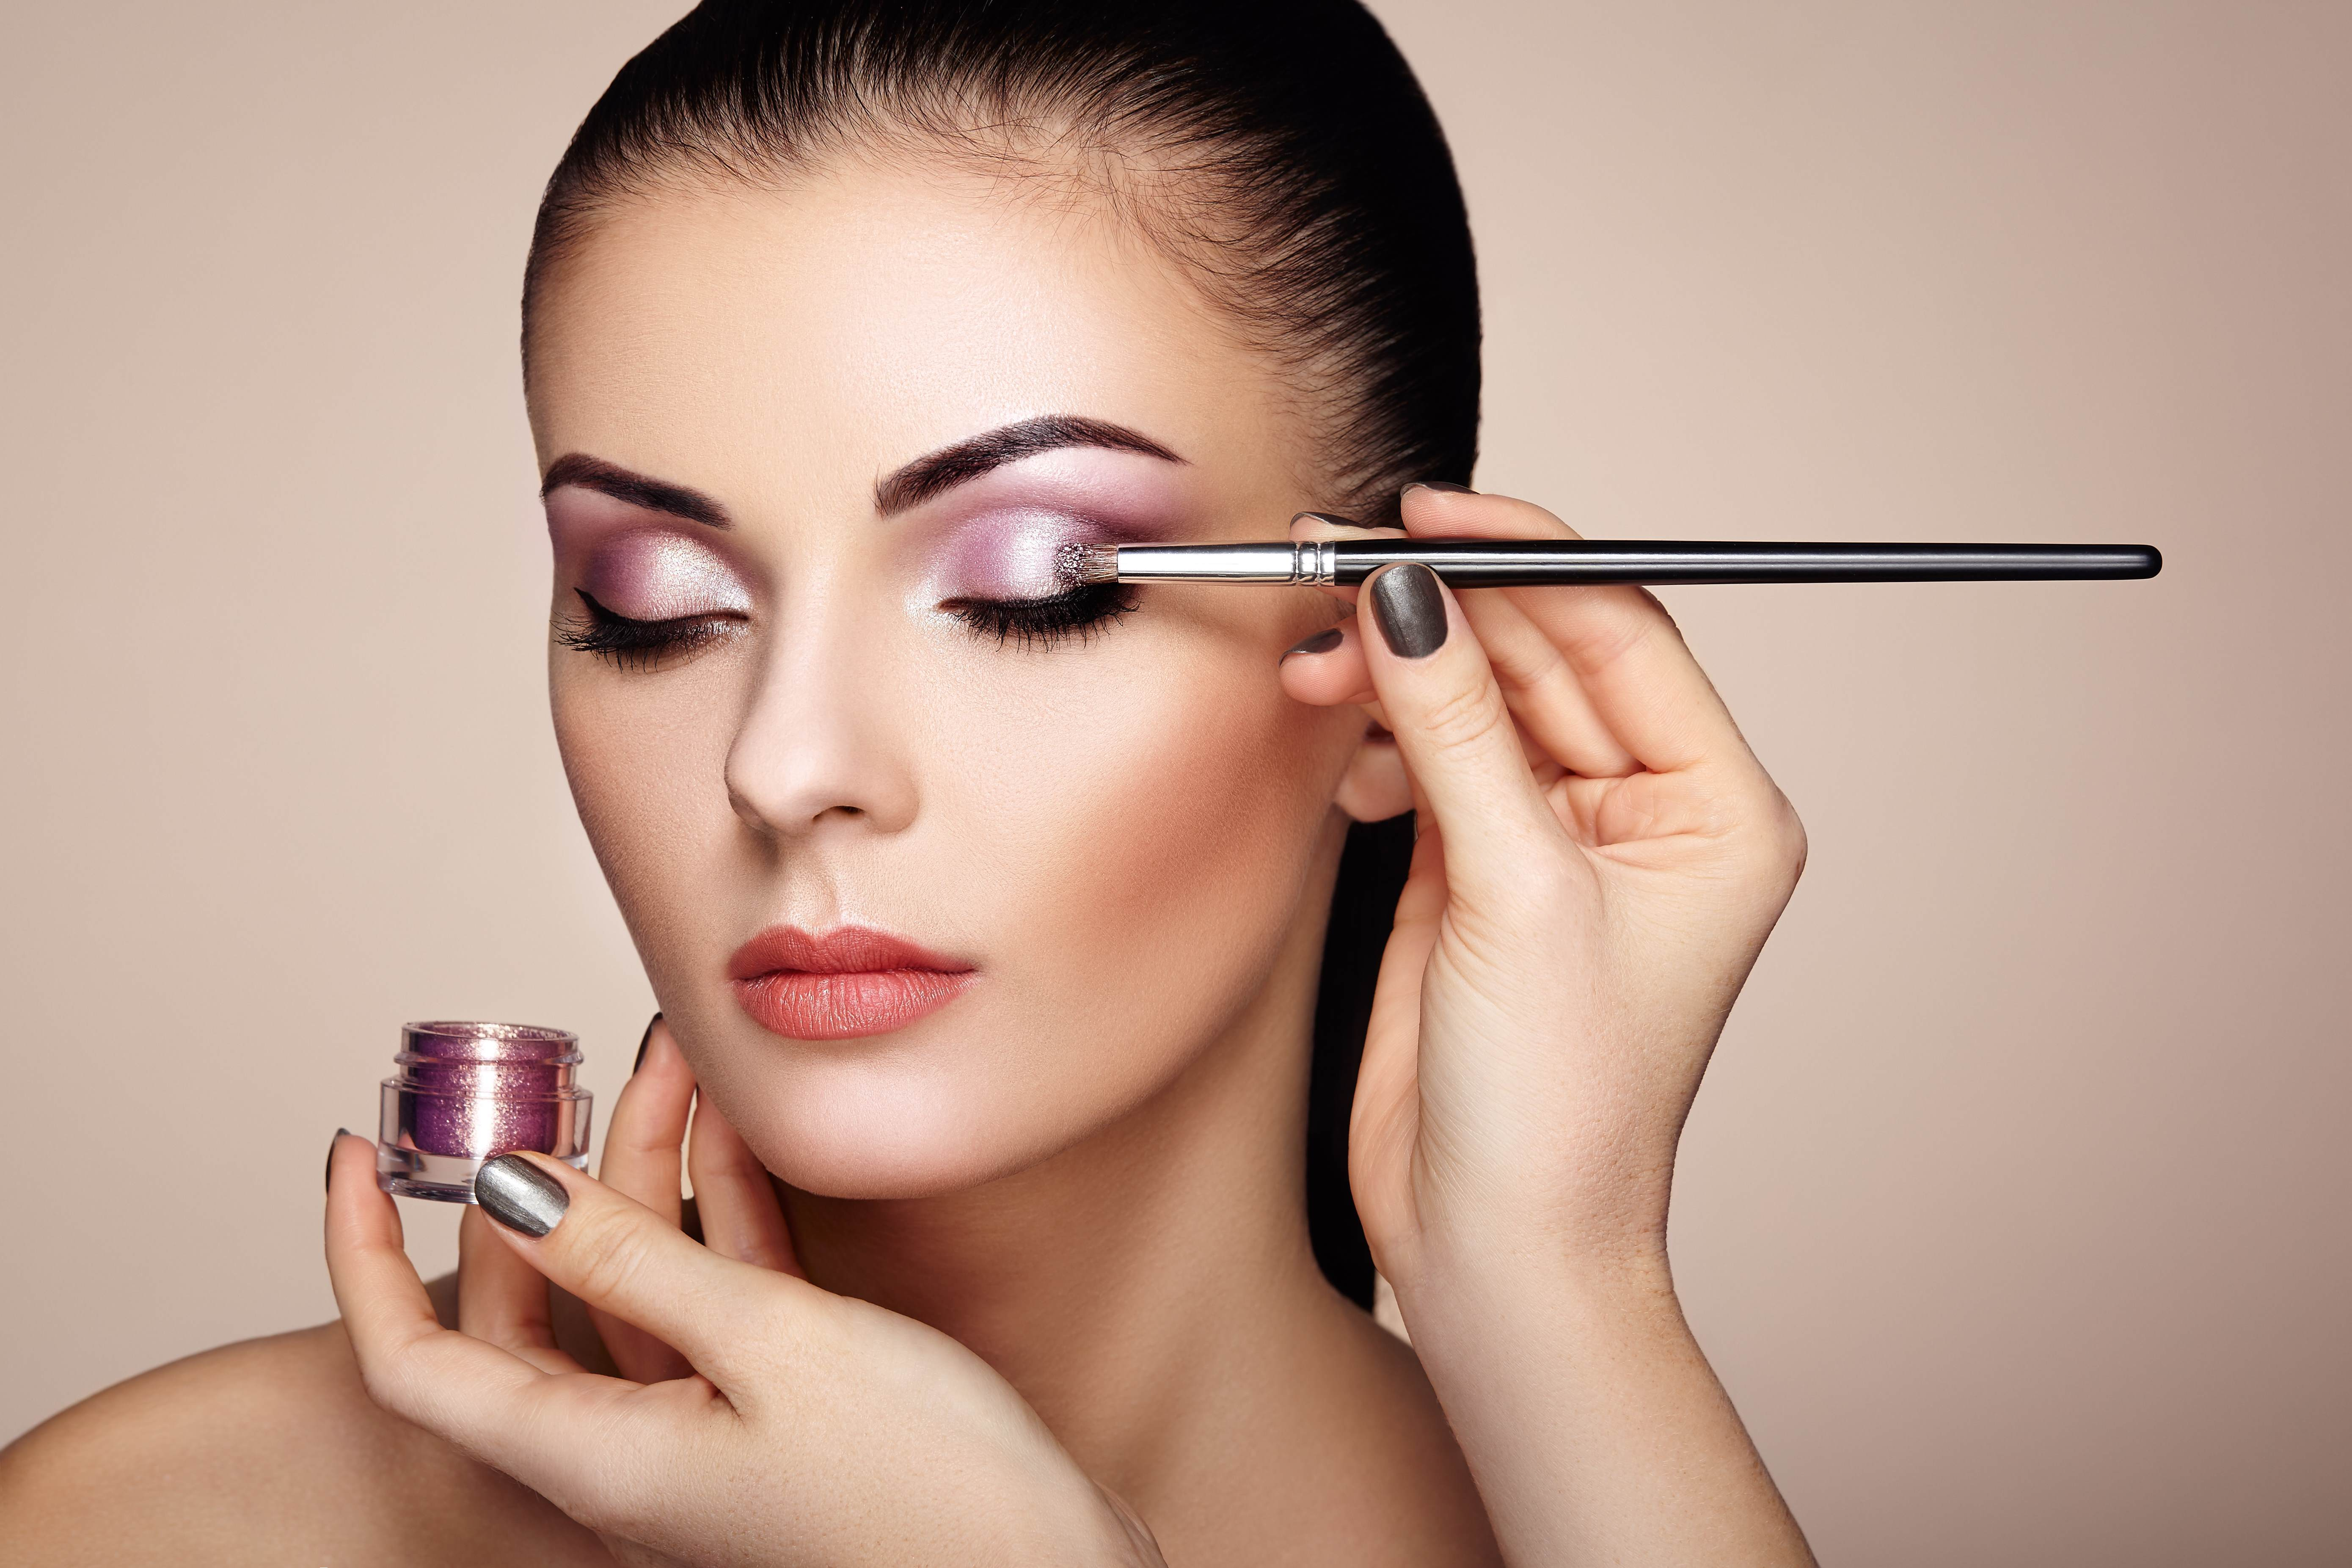 Female having purple glitter eyeshadow applied using makeup brush that showcases Croda's Moonshine effect pigment range